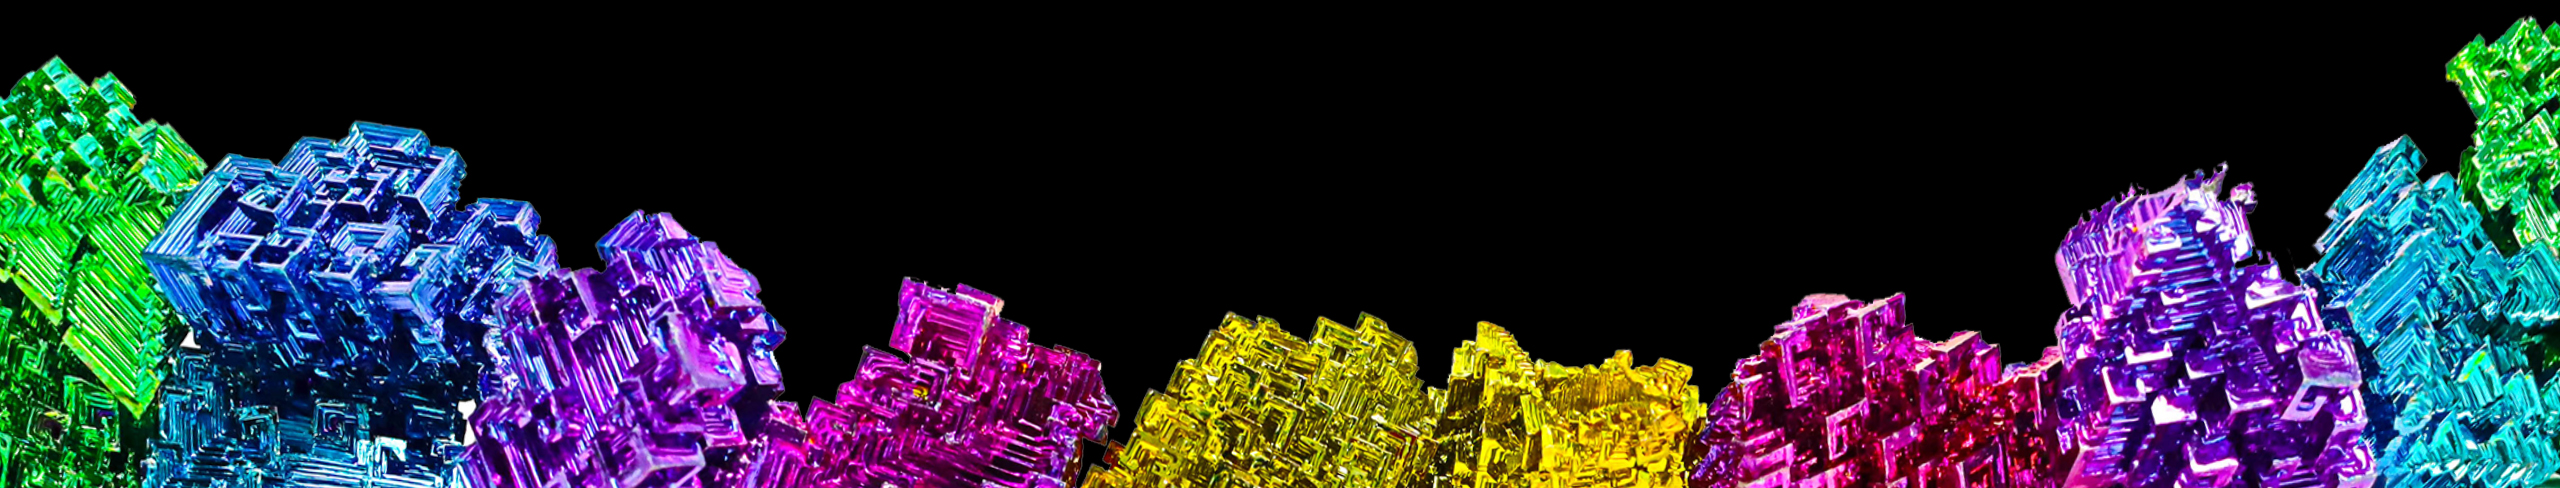 BISMUTH SCULPTURES